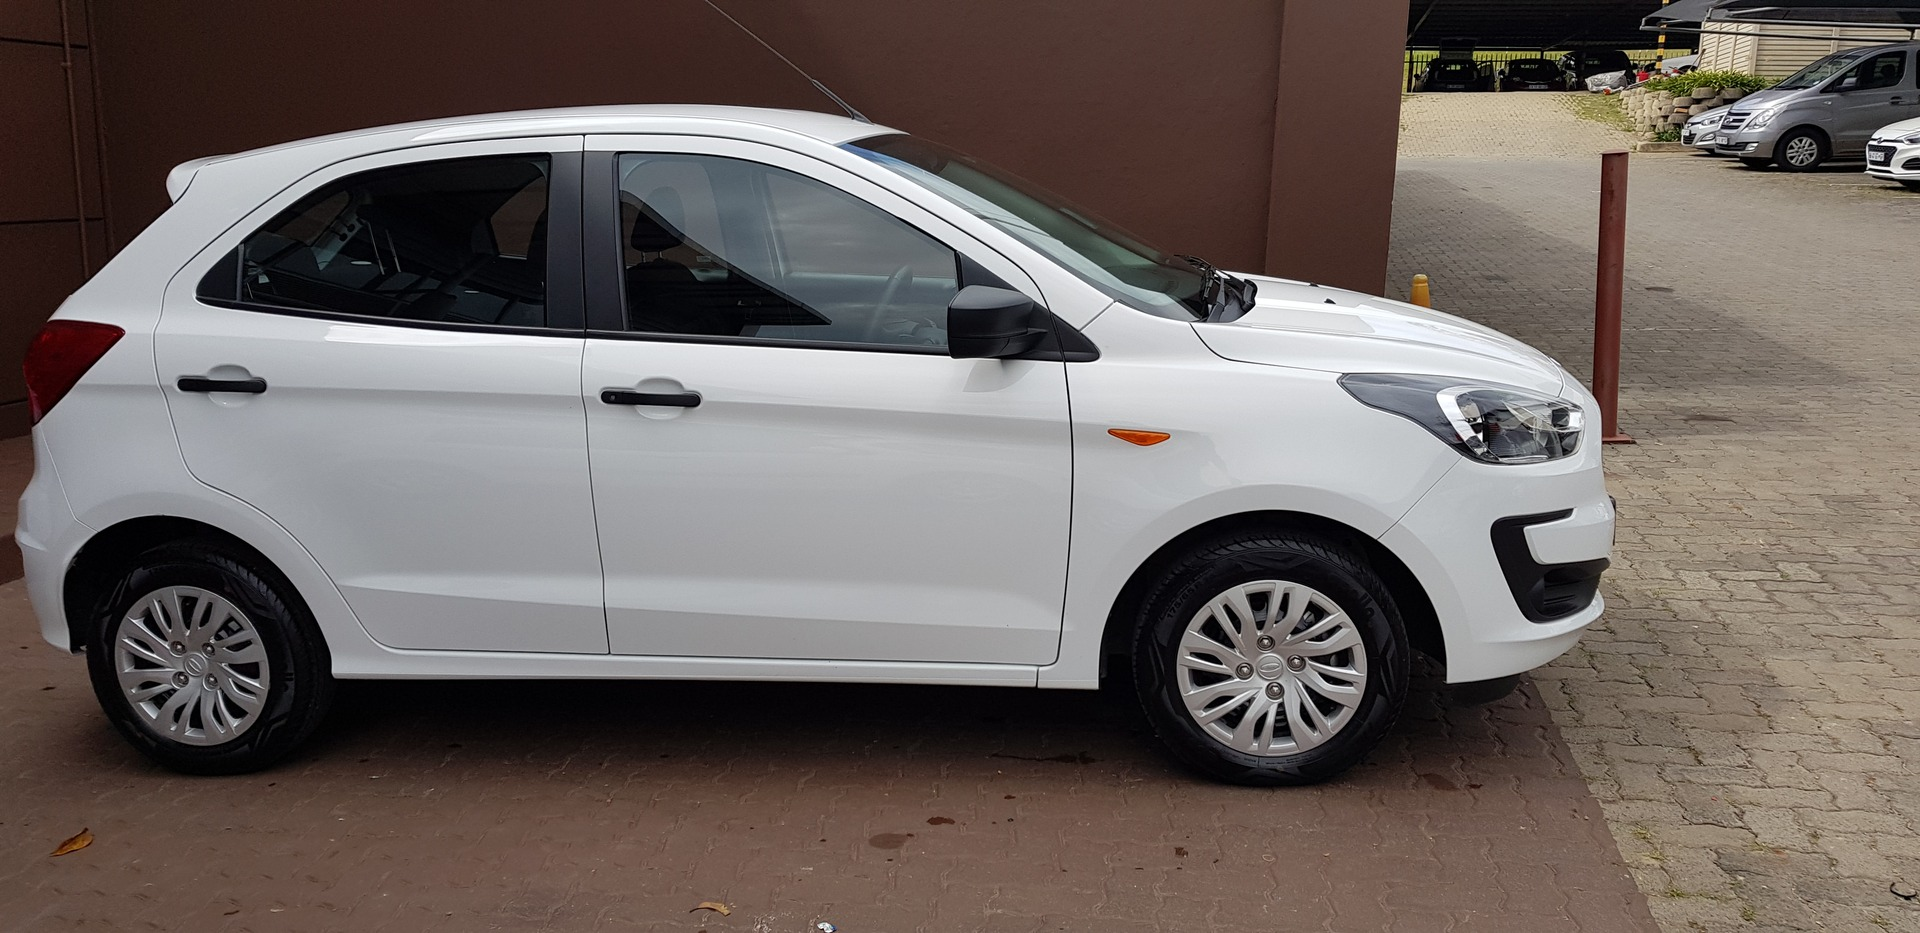 FORD 1.5Ti VCT AMBIENTE (5DR) Johannesburg 2332460